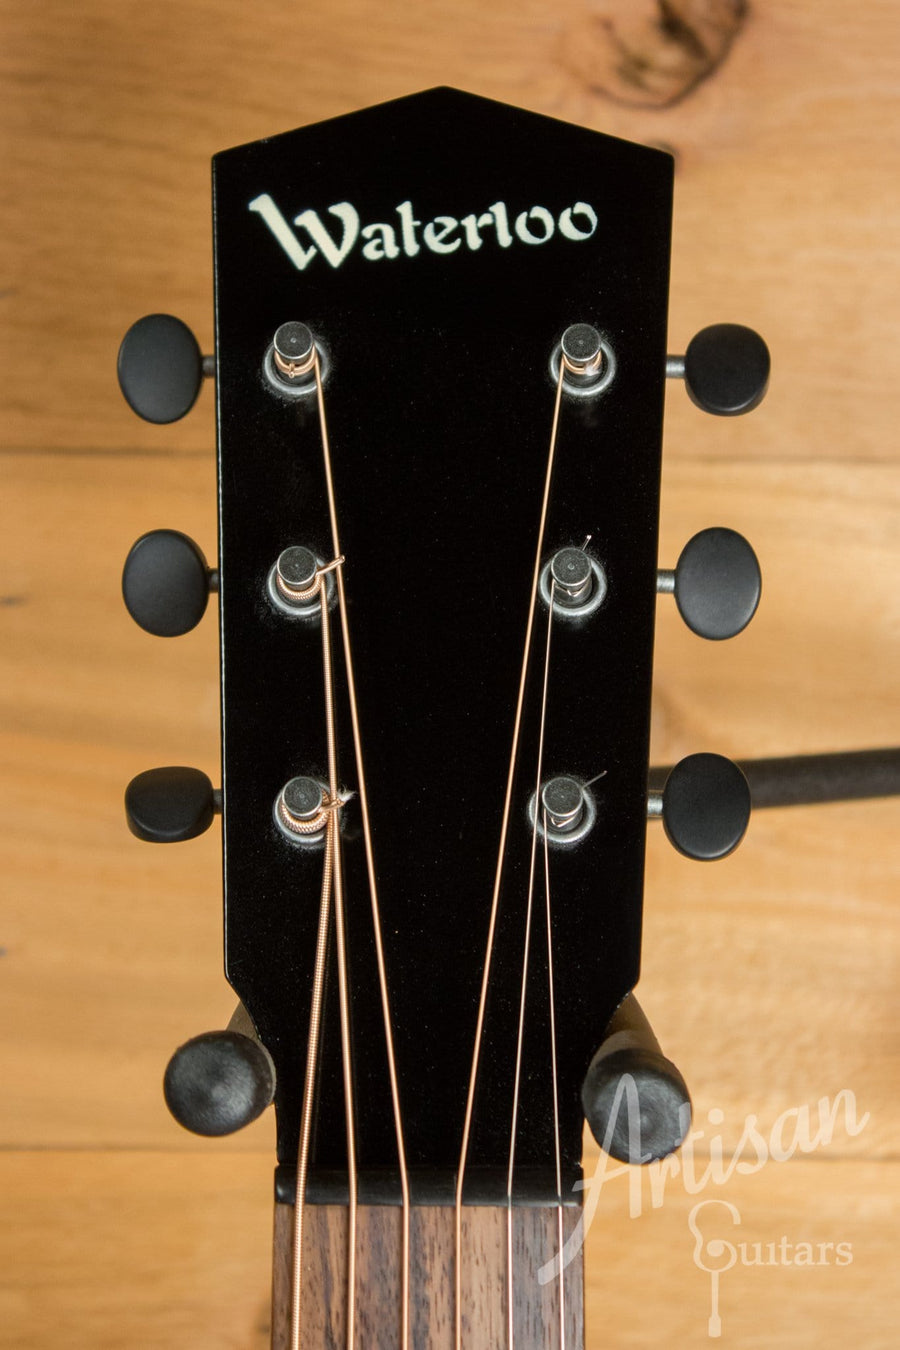 Waterloo WL-14L Guitar with Sunburst Finish with Small Neck Profile ID-10890